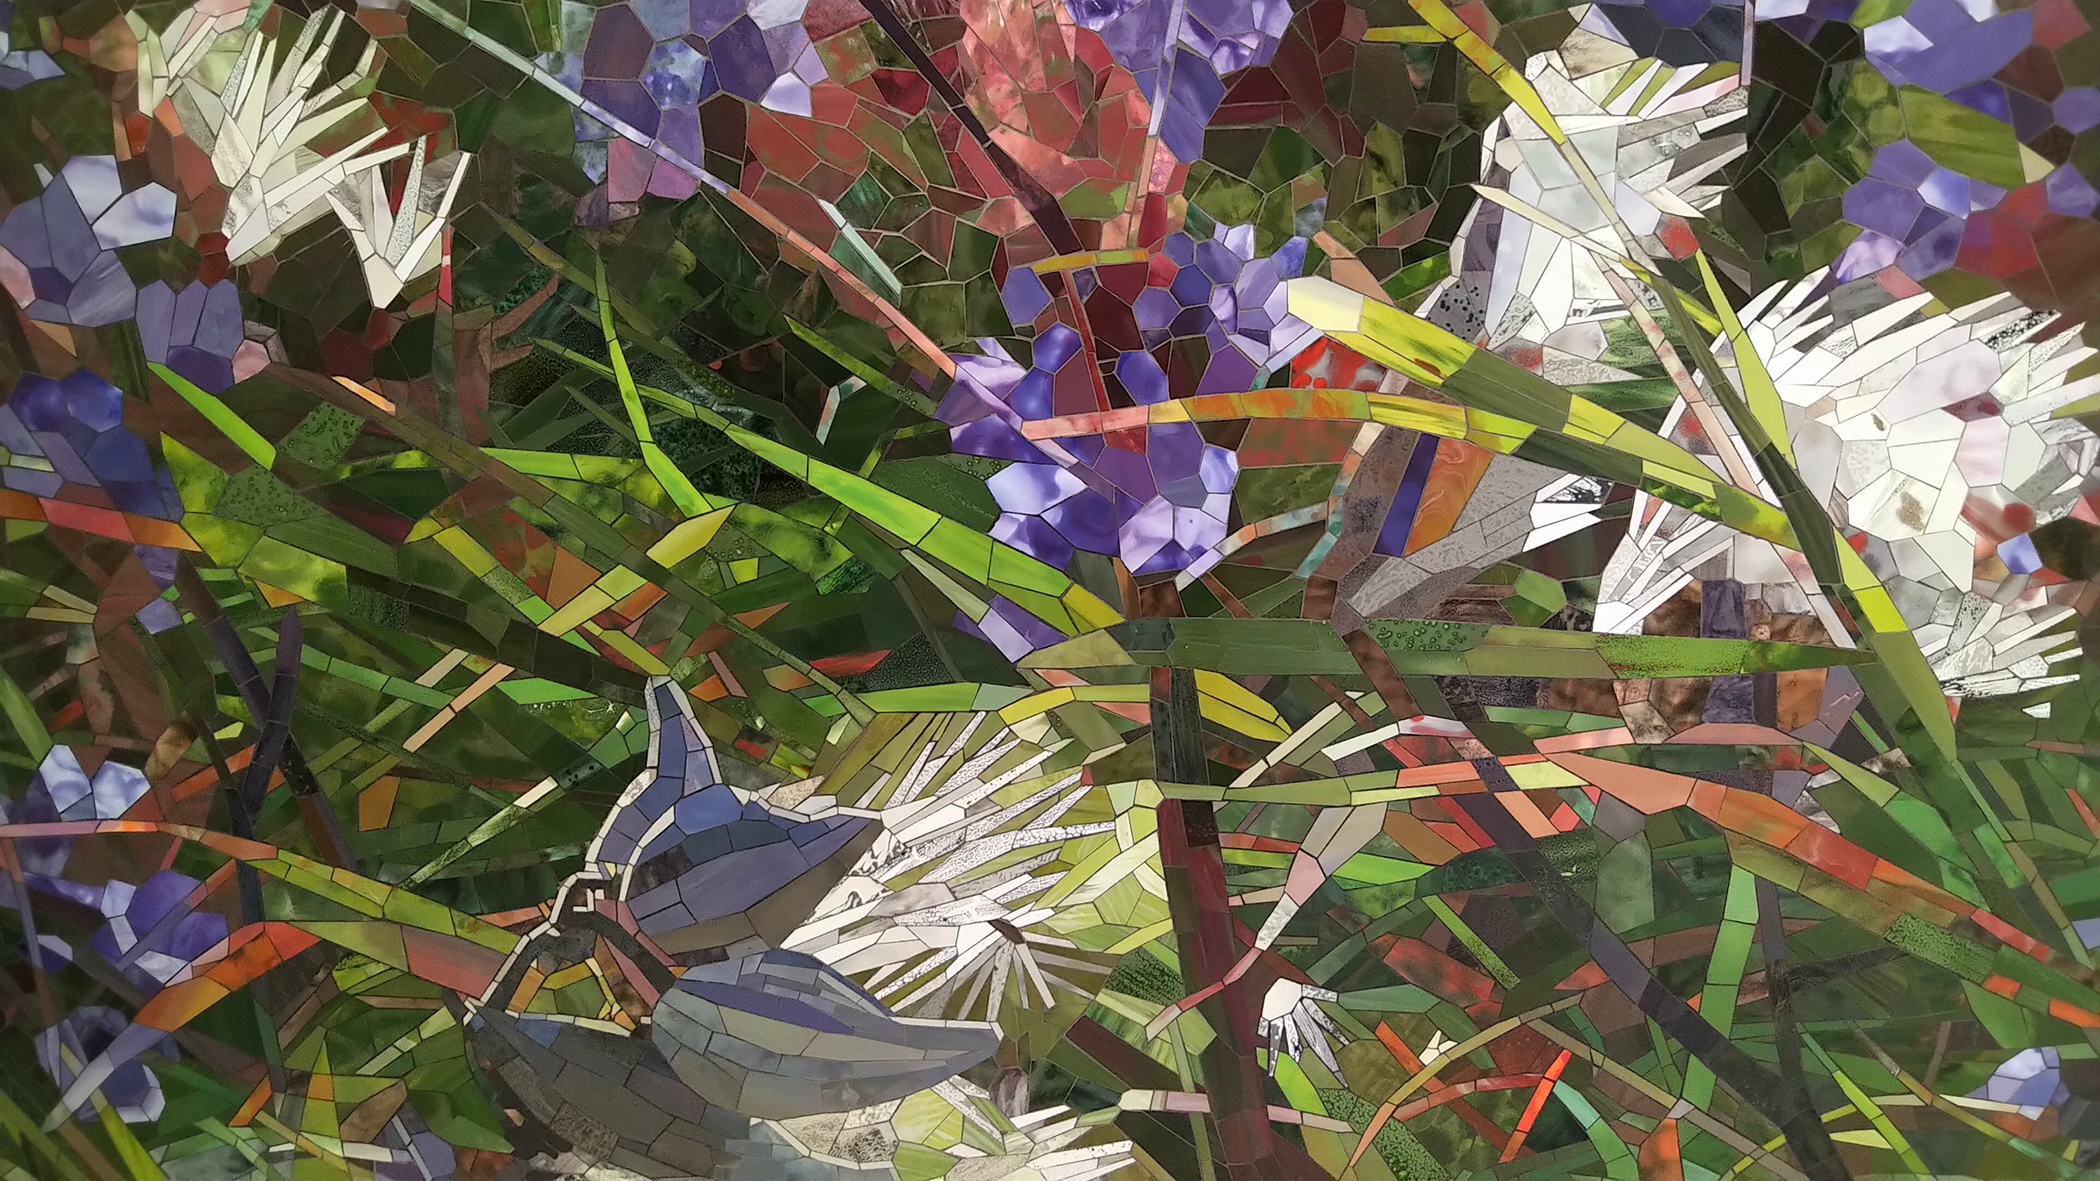 Milkweed Verbena detail 1 2020 ceramic mosaic 8x14ft by Contemporary Canadian Artist Katharine Harvey